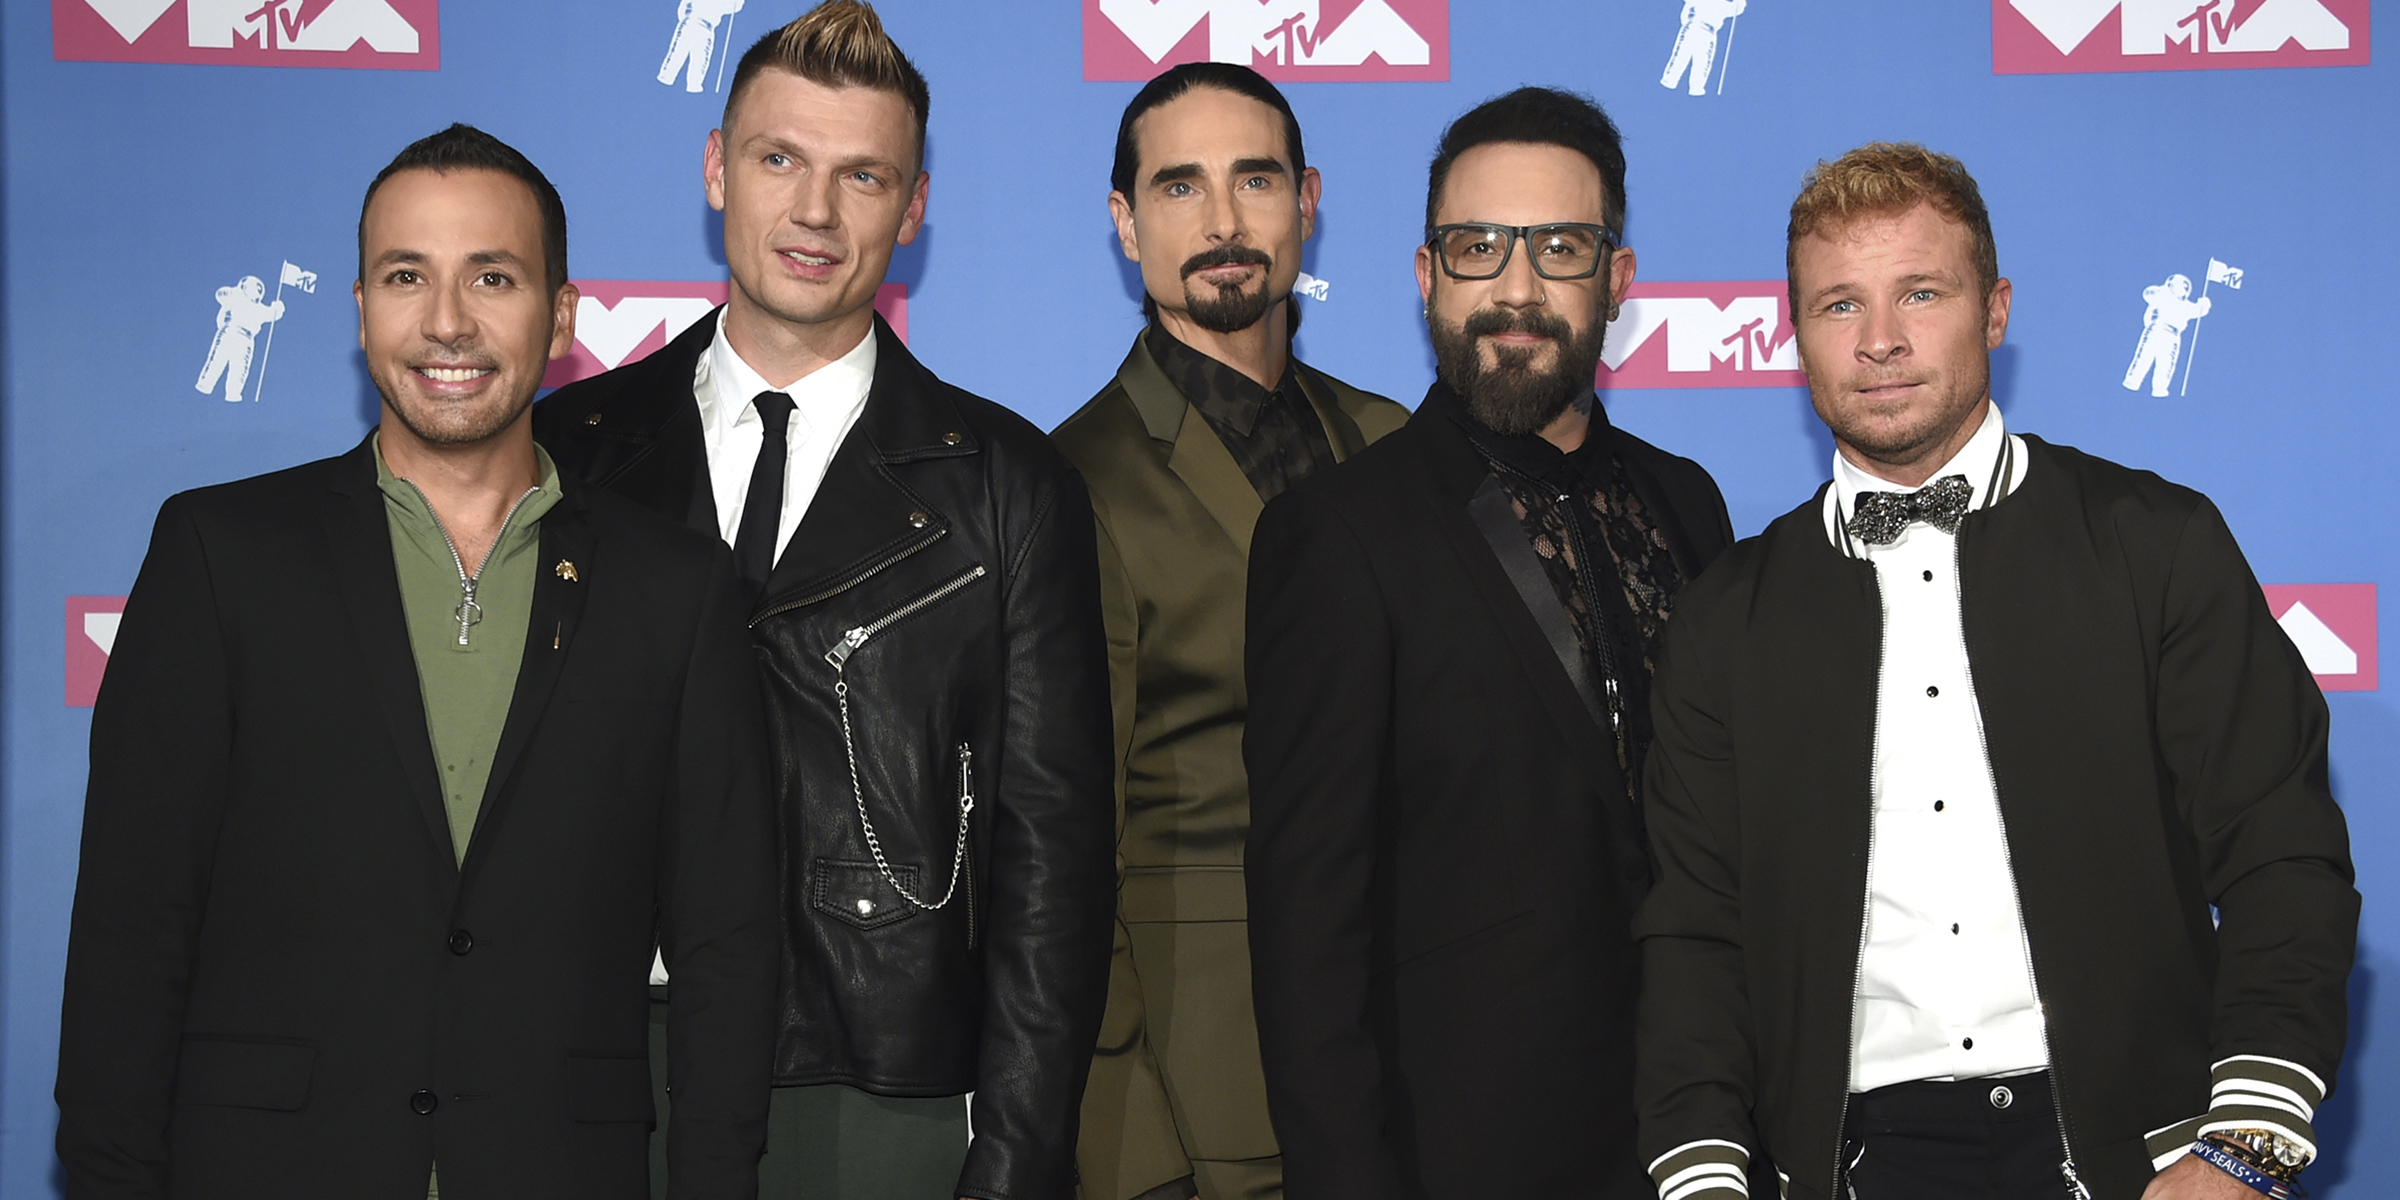 One of the backstreet boys calls it quits - 2019 year